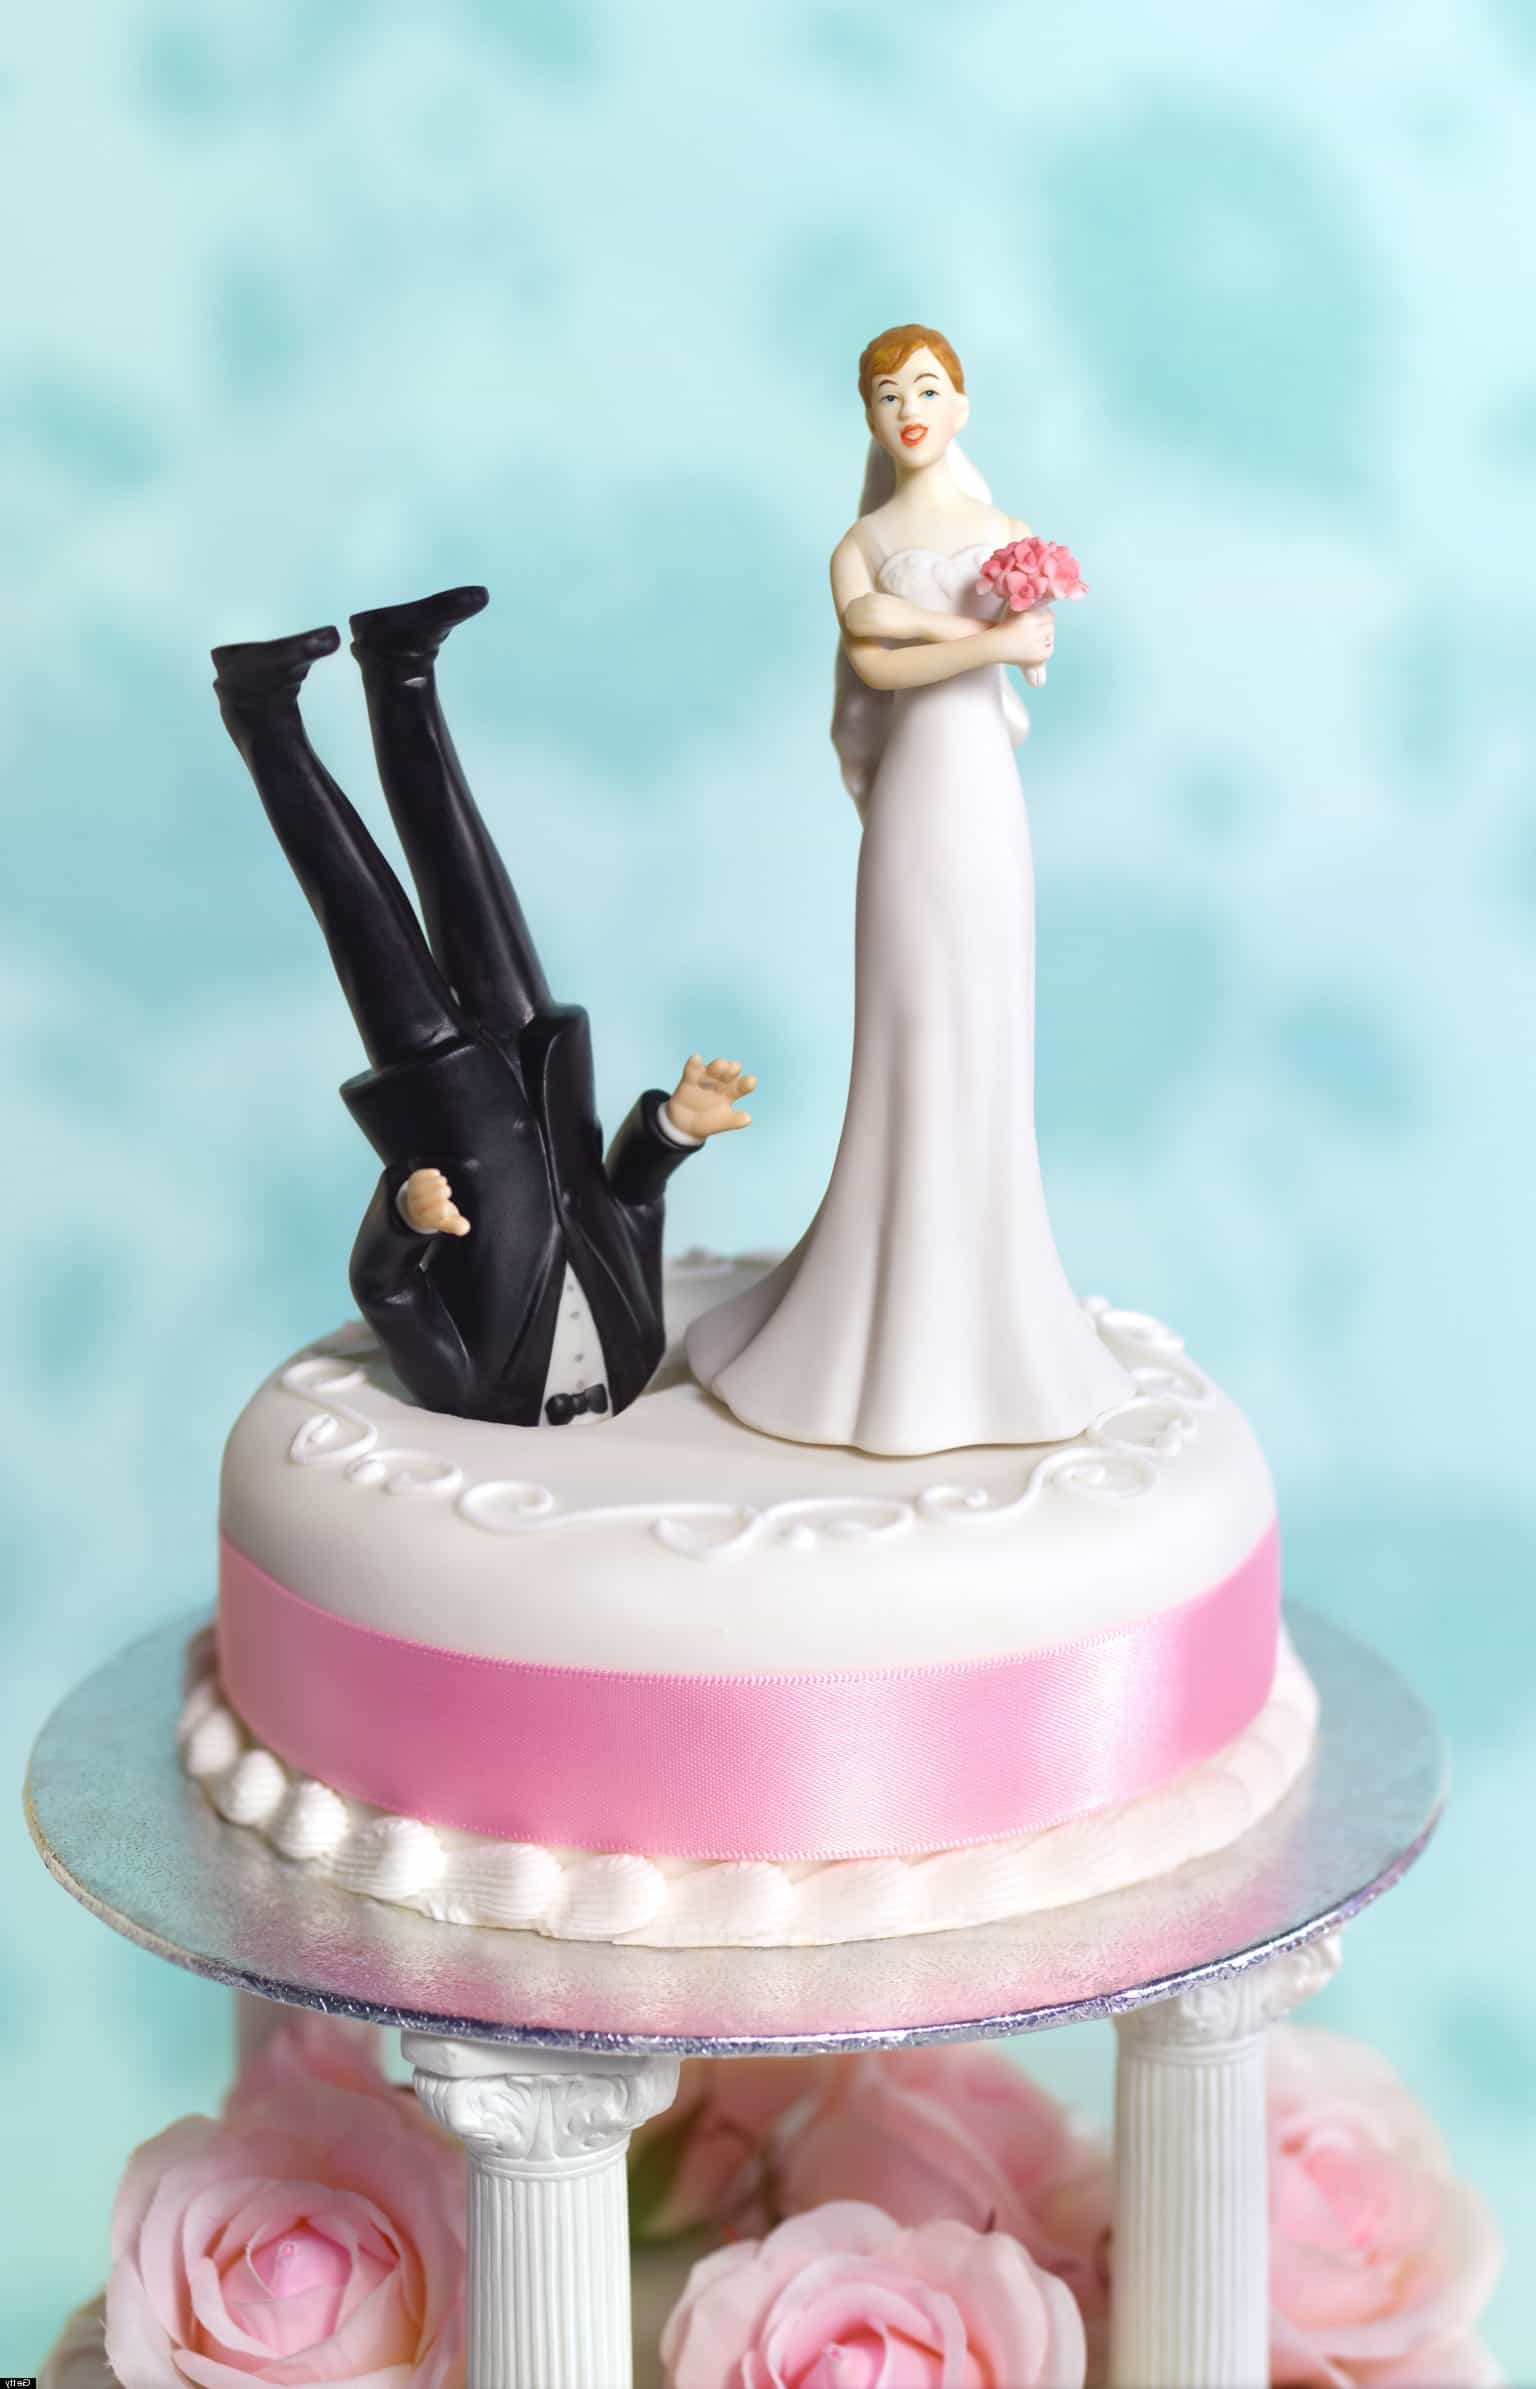 Funny Wedding Cake Topper (Image 5 of 10)